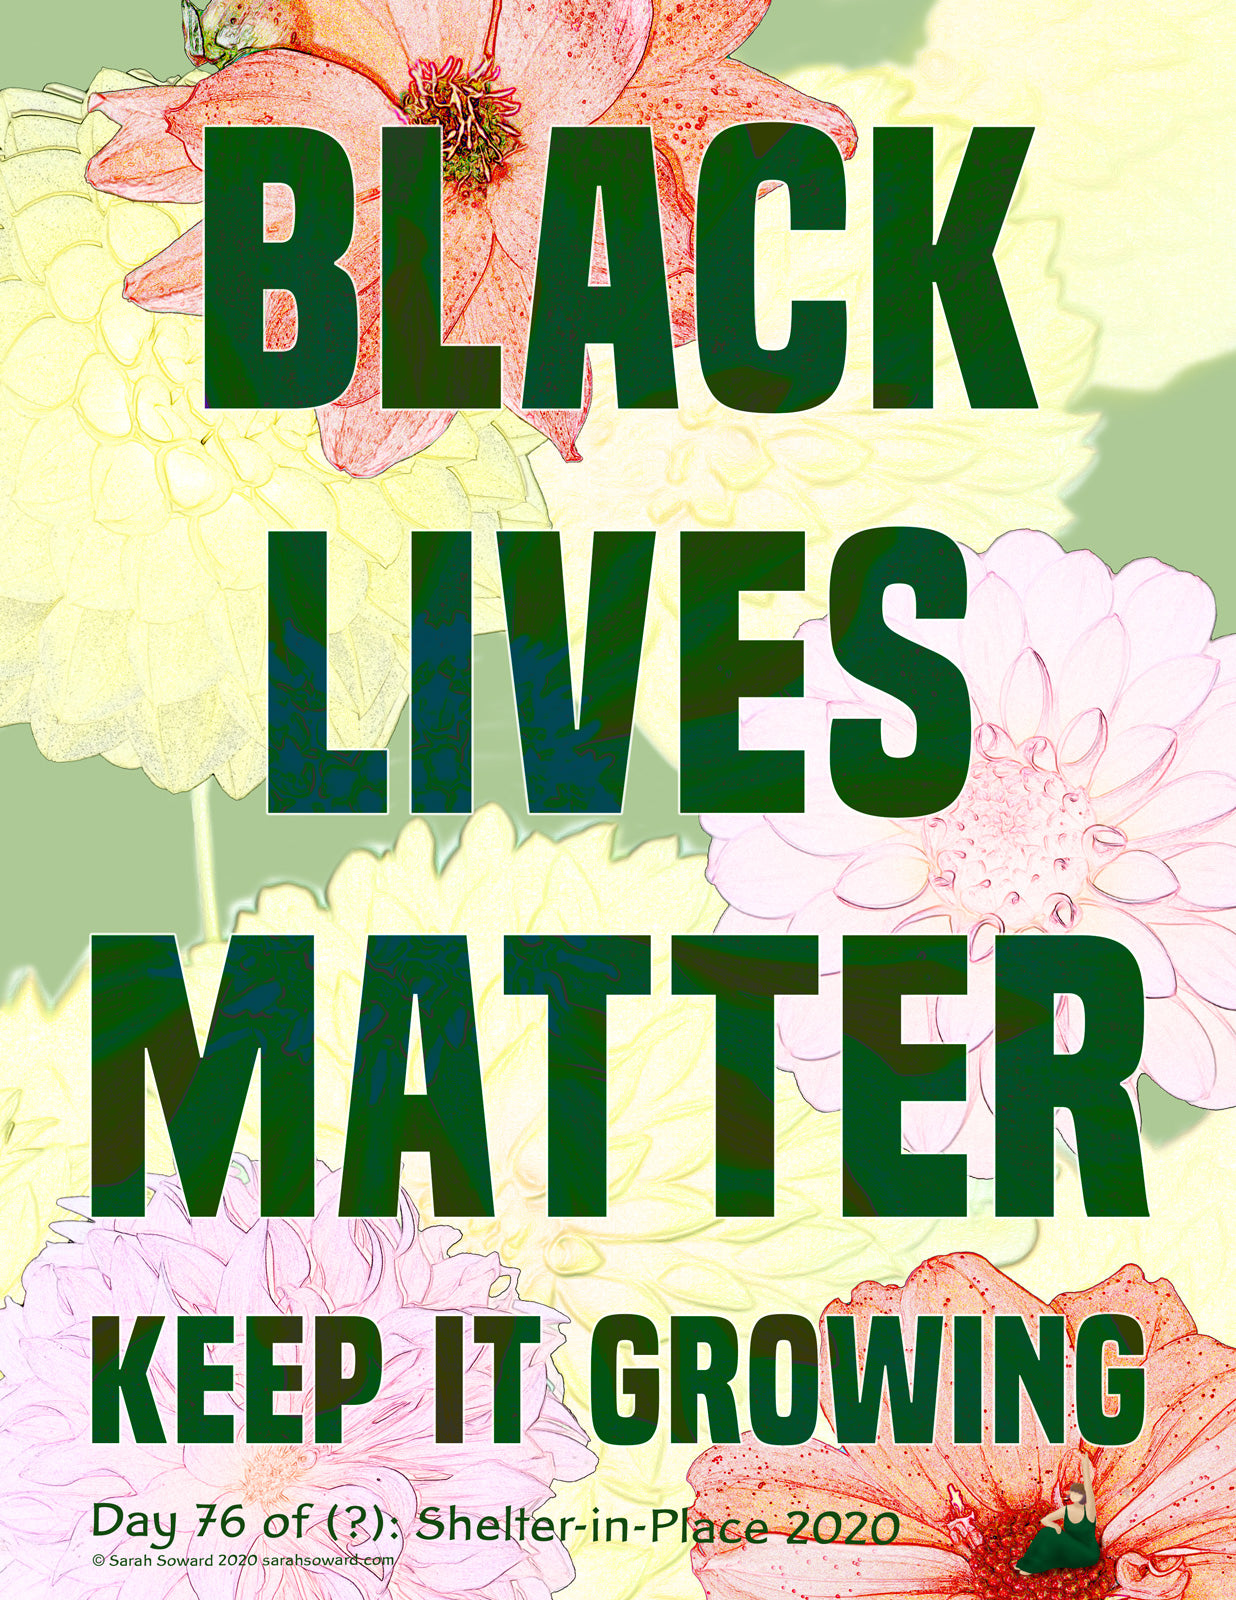 Image reads, Black Lives Matter Keep it Growing, in big green text. The background has dahlias and a tiny woman pointing up at the text.